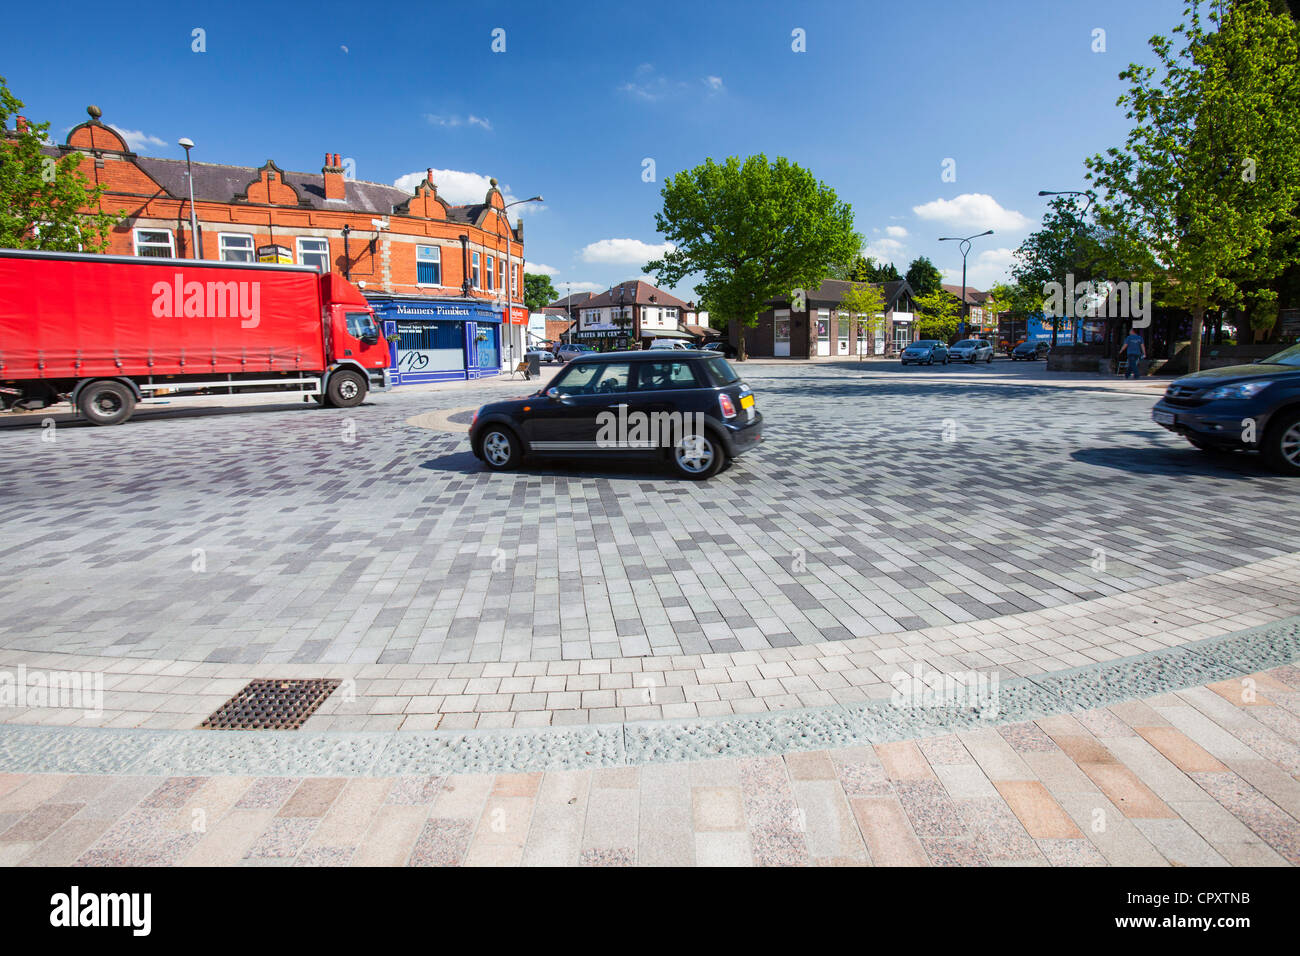 Poynton village in Cheshire which has been converted into a shared space village, where pedestrians and motorists - Stock Image